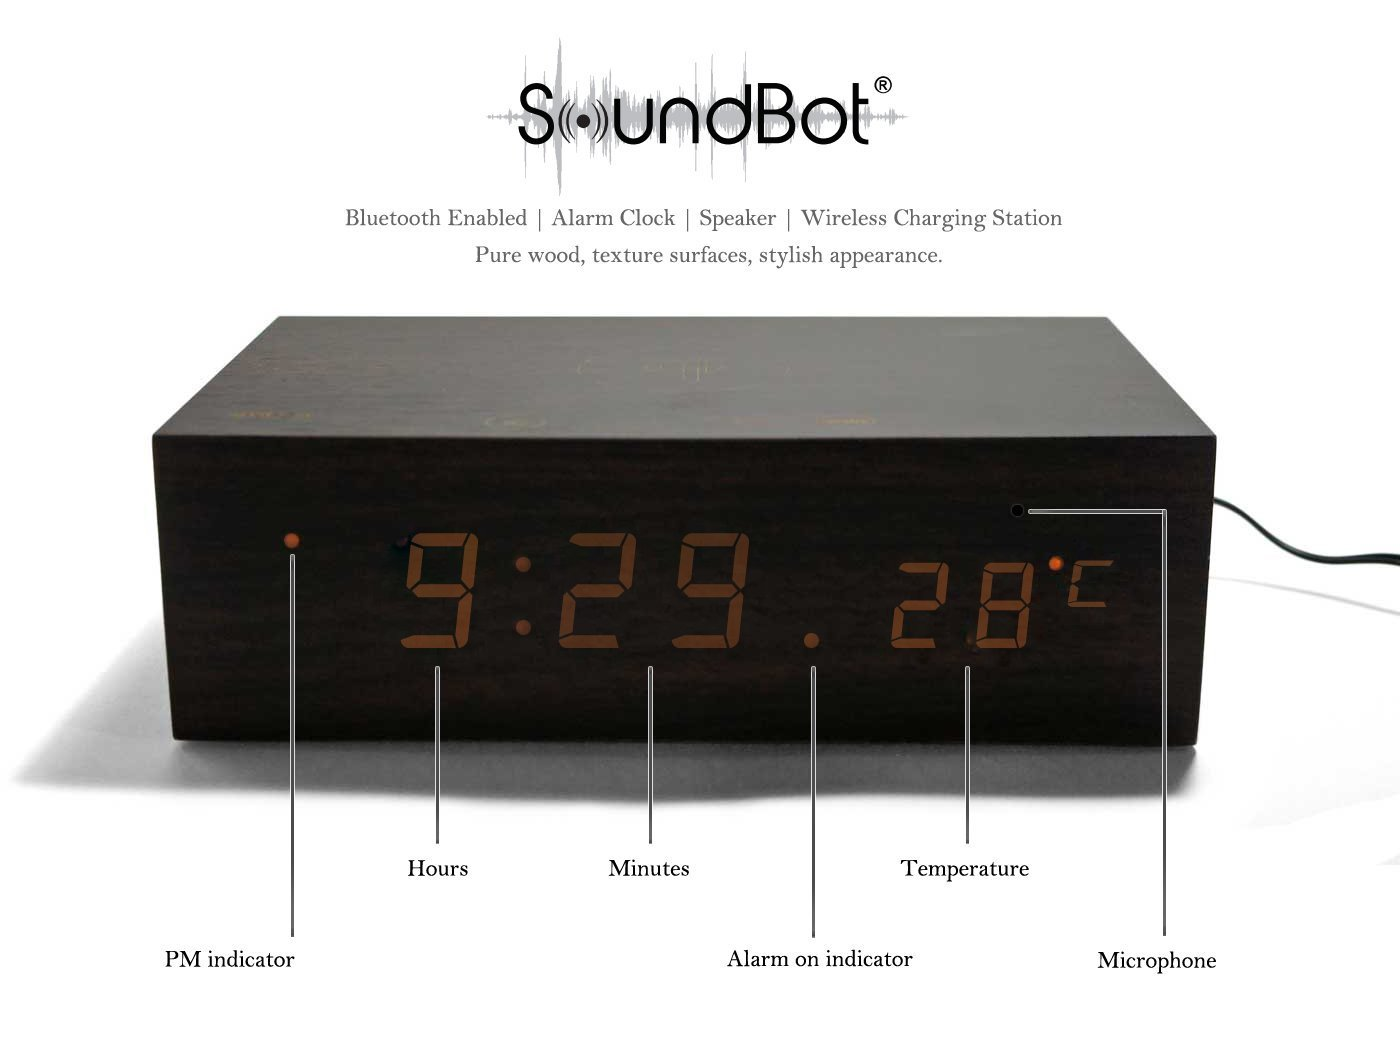 audio speaker bluetooth nfc builtin microphone alarm clock thermometer and large led display for smart phone tablets